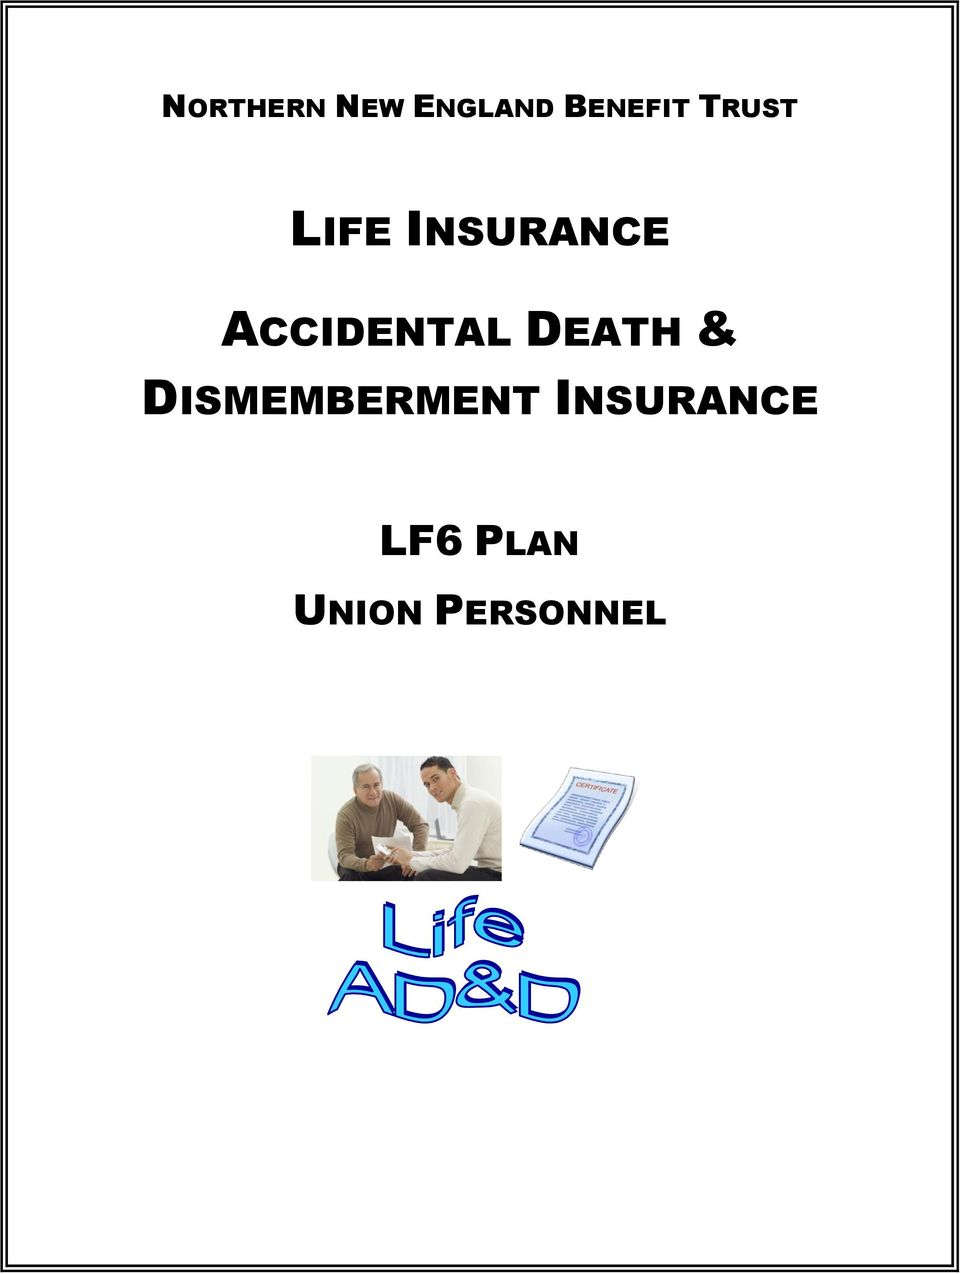 ACCIDENTAL DEATH &